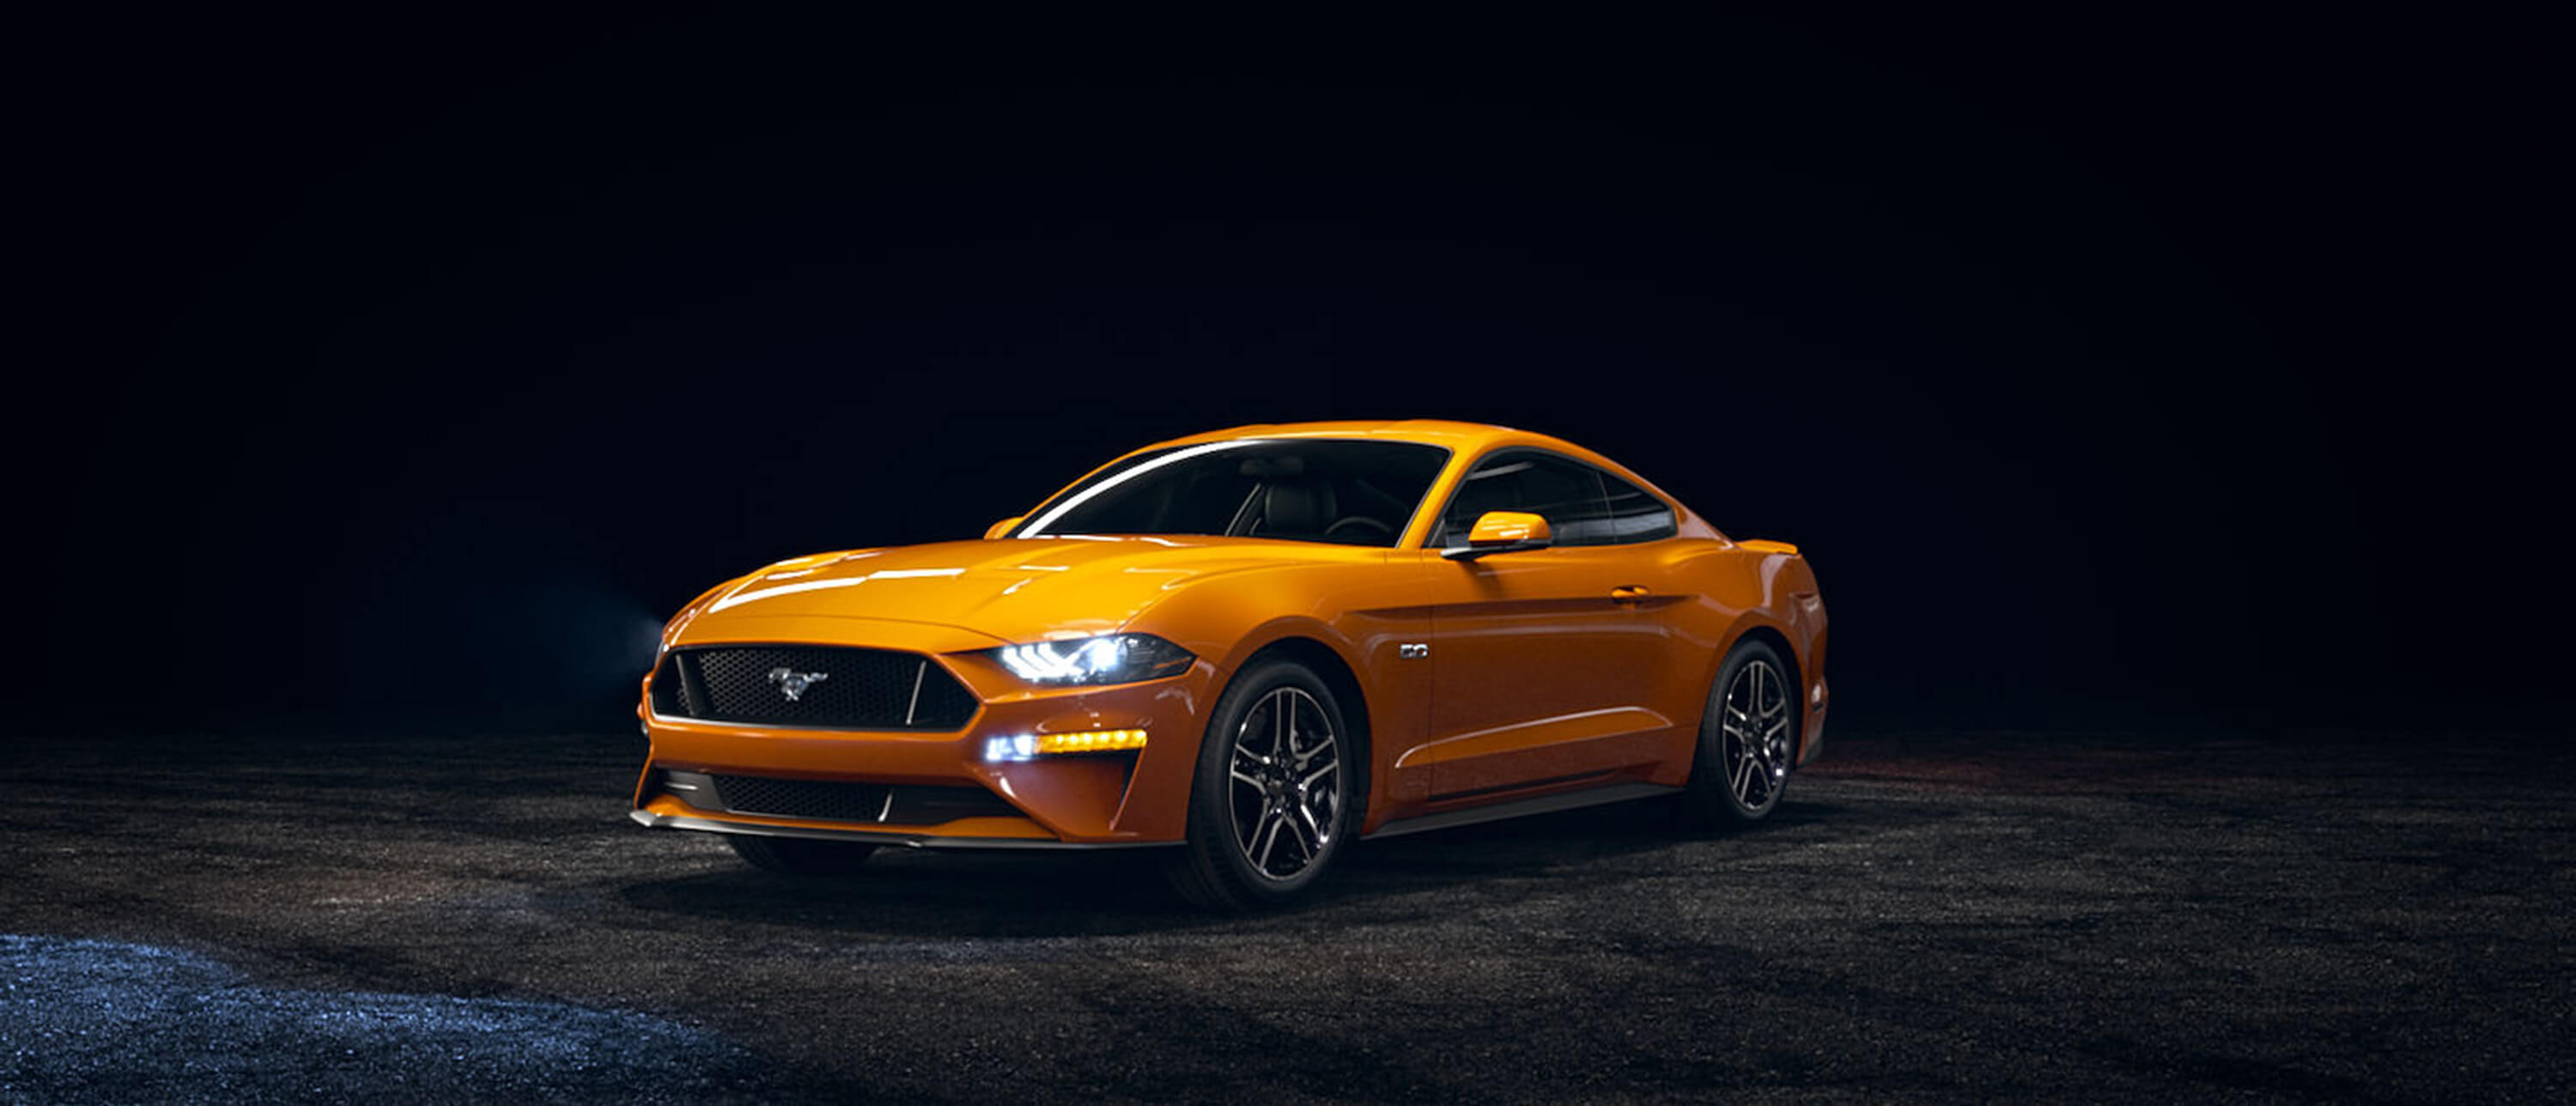 2018 ford mustang gt coupe is a worthy competitor in sports car market